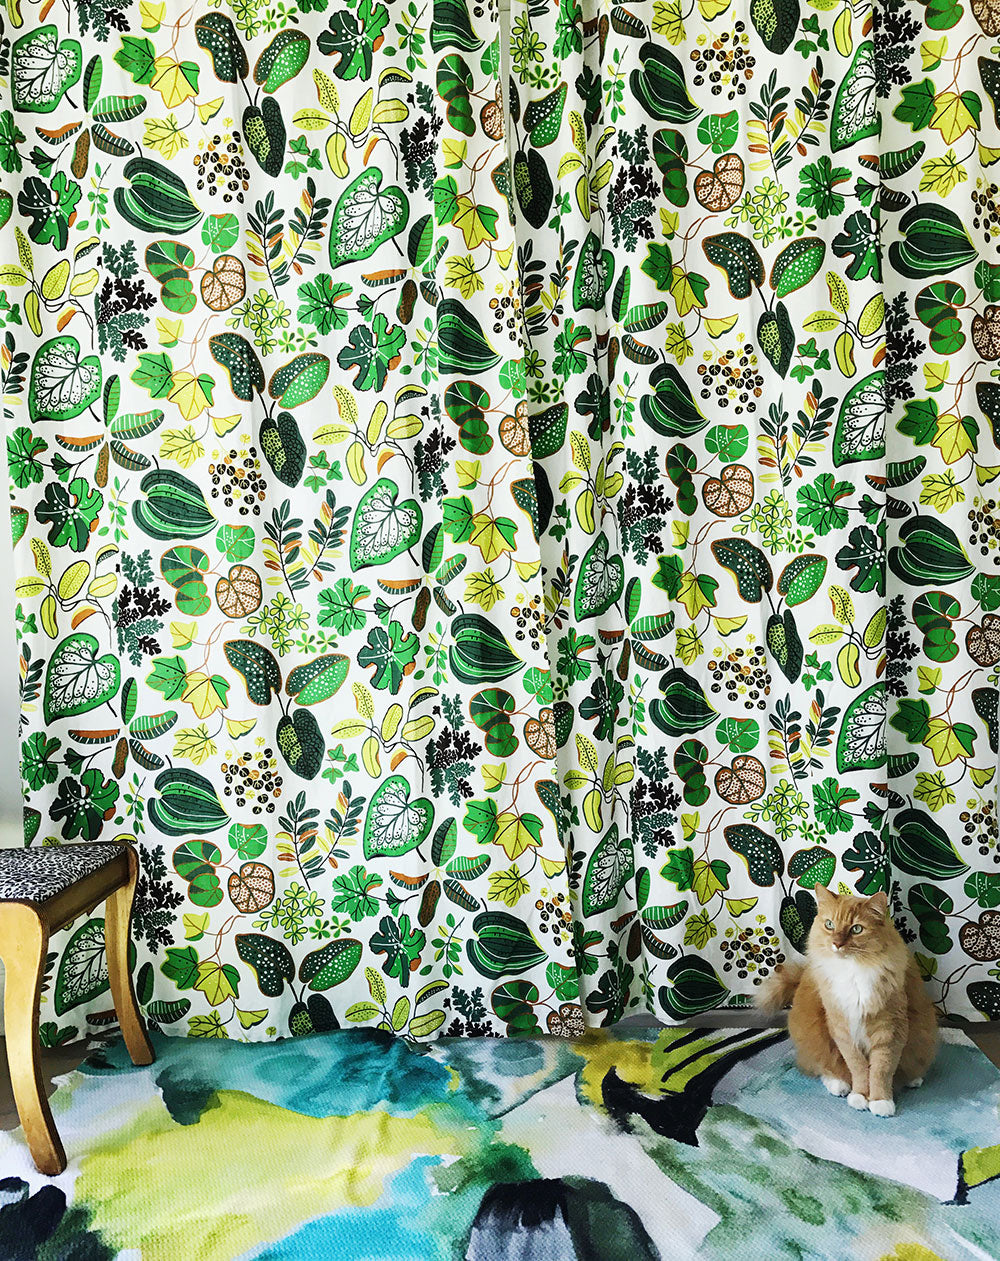 Ajax-IkeaLeafCurtains-Green